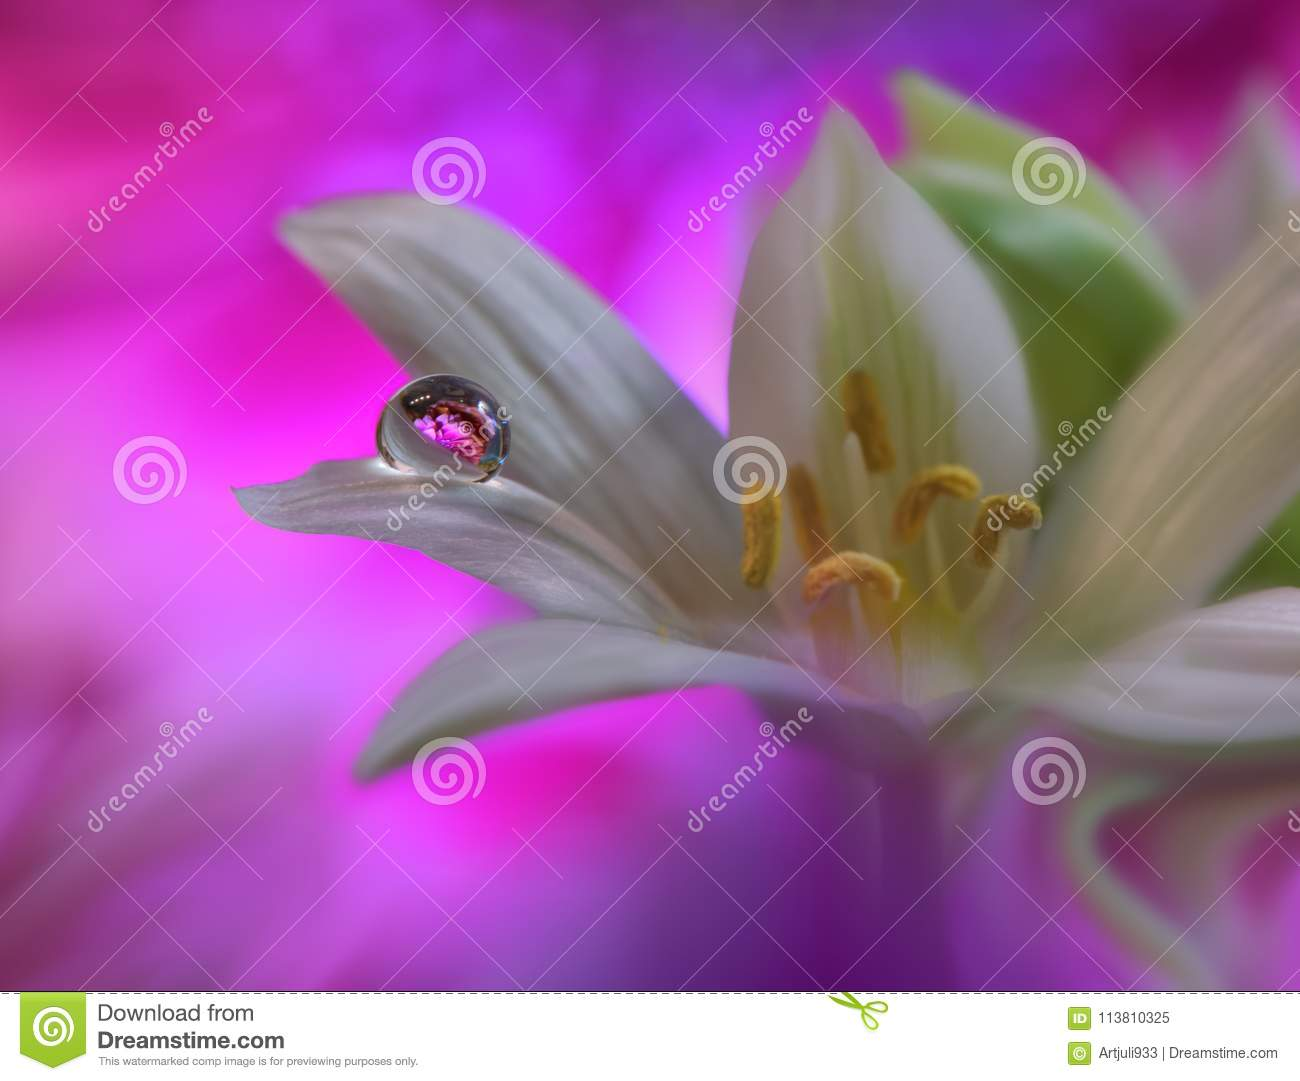 Art Abstract spring floral background for design.Droplet, drop.Purple,flower.Web banner.Border background.Beautiful Nature.